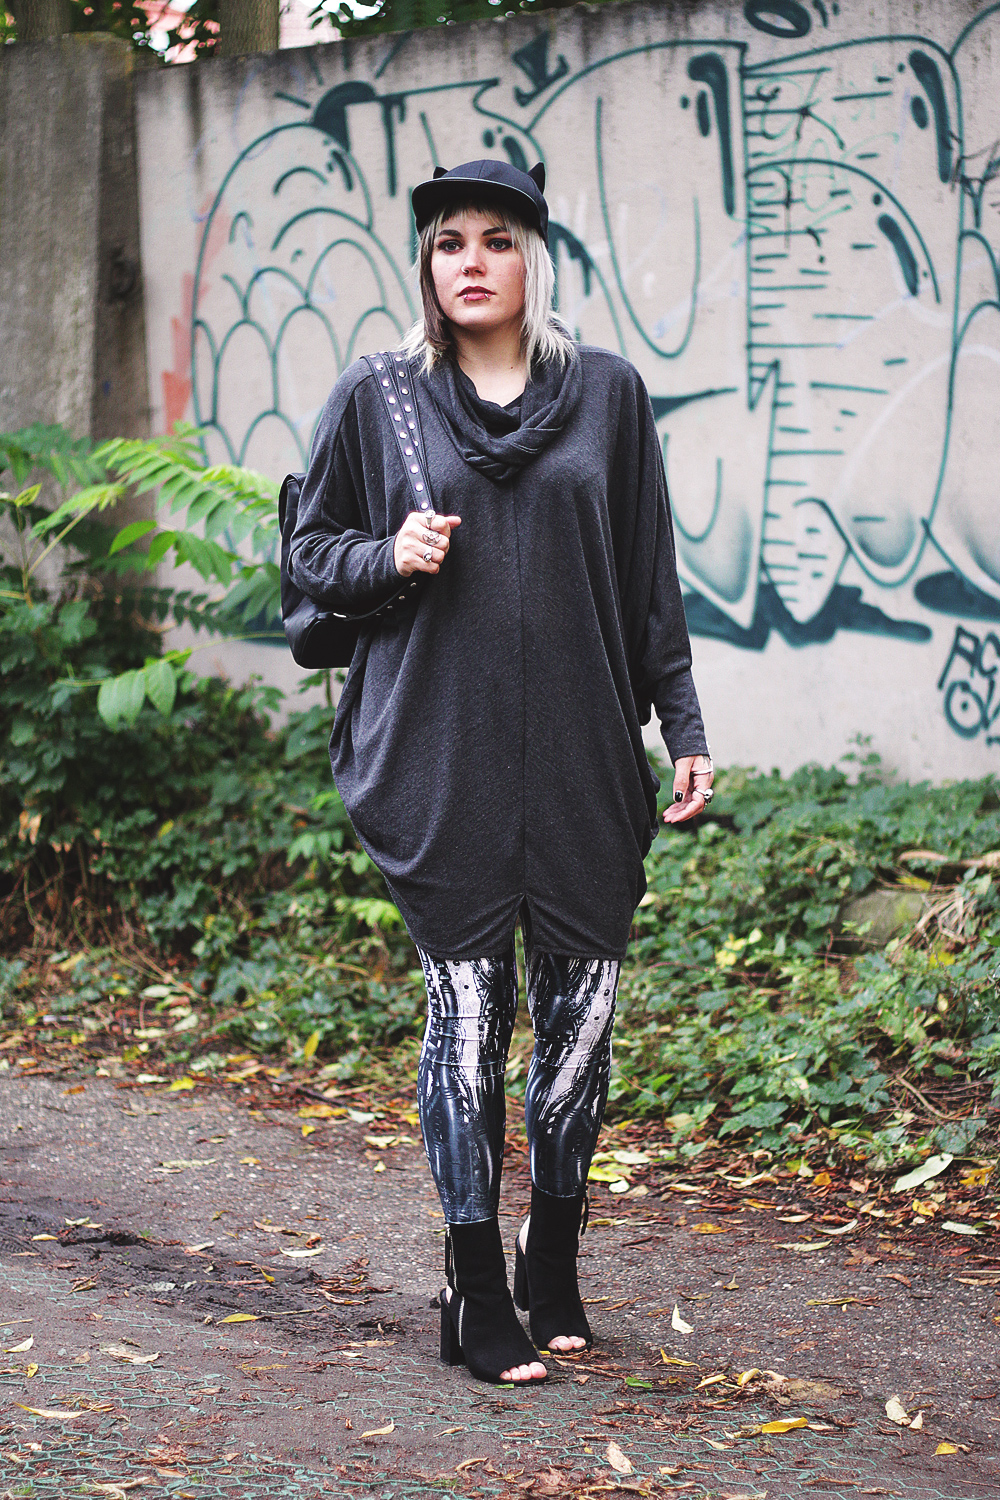 kawaii, berlin, berlin fashion, berlin streetstyle, berlin fashion blogger, blogger, fashion blogger, punk, grunge, punk fashion, grunge fashion, alternative, alternative fashion, alternative girl, altgirl, snakebites, girls with piercings, scenehair, mode, alternative mode, punk mode, grunge mode, split hair, splithair, girls with tattoos, tattoomädchen, tattoomodel, berlin mode, alternative mode, punkmädchen, punk girl, miau, katze, cat hat, cap, black milk, black milk clothing, cyber, robo, roboter, robot, steam punk, asos, heels, blockabsatz, peeptoes, mnml, strick, pulli, oversized, disturbia, dollskill, usa, metal backpack, rucksack